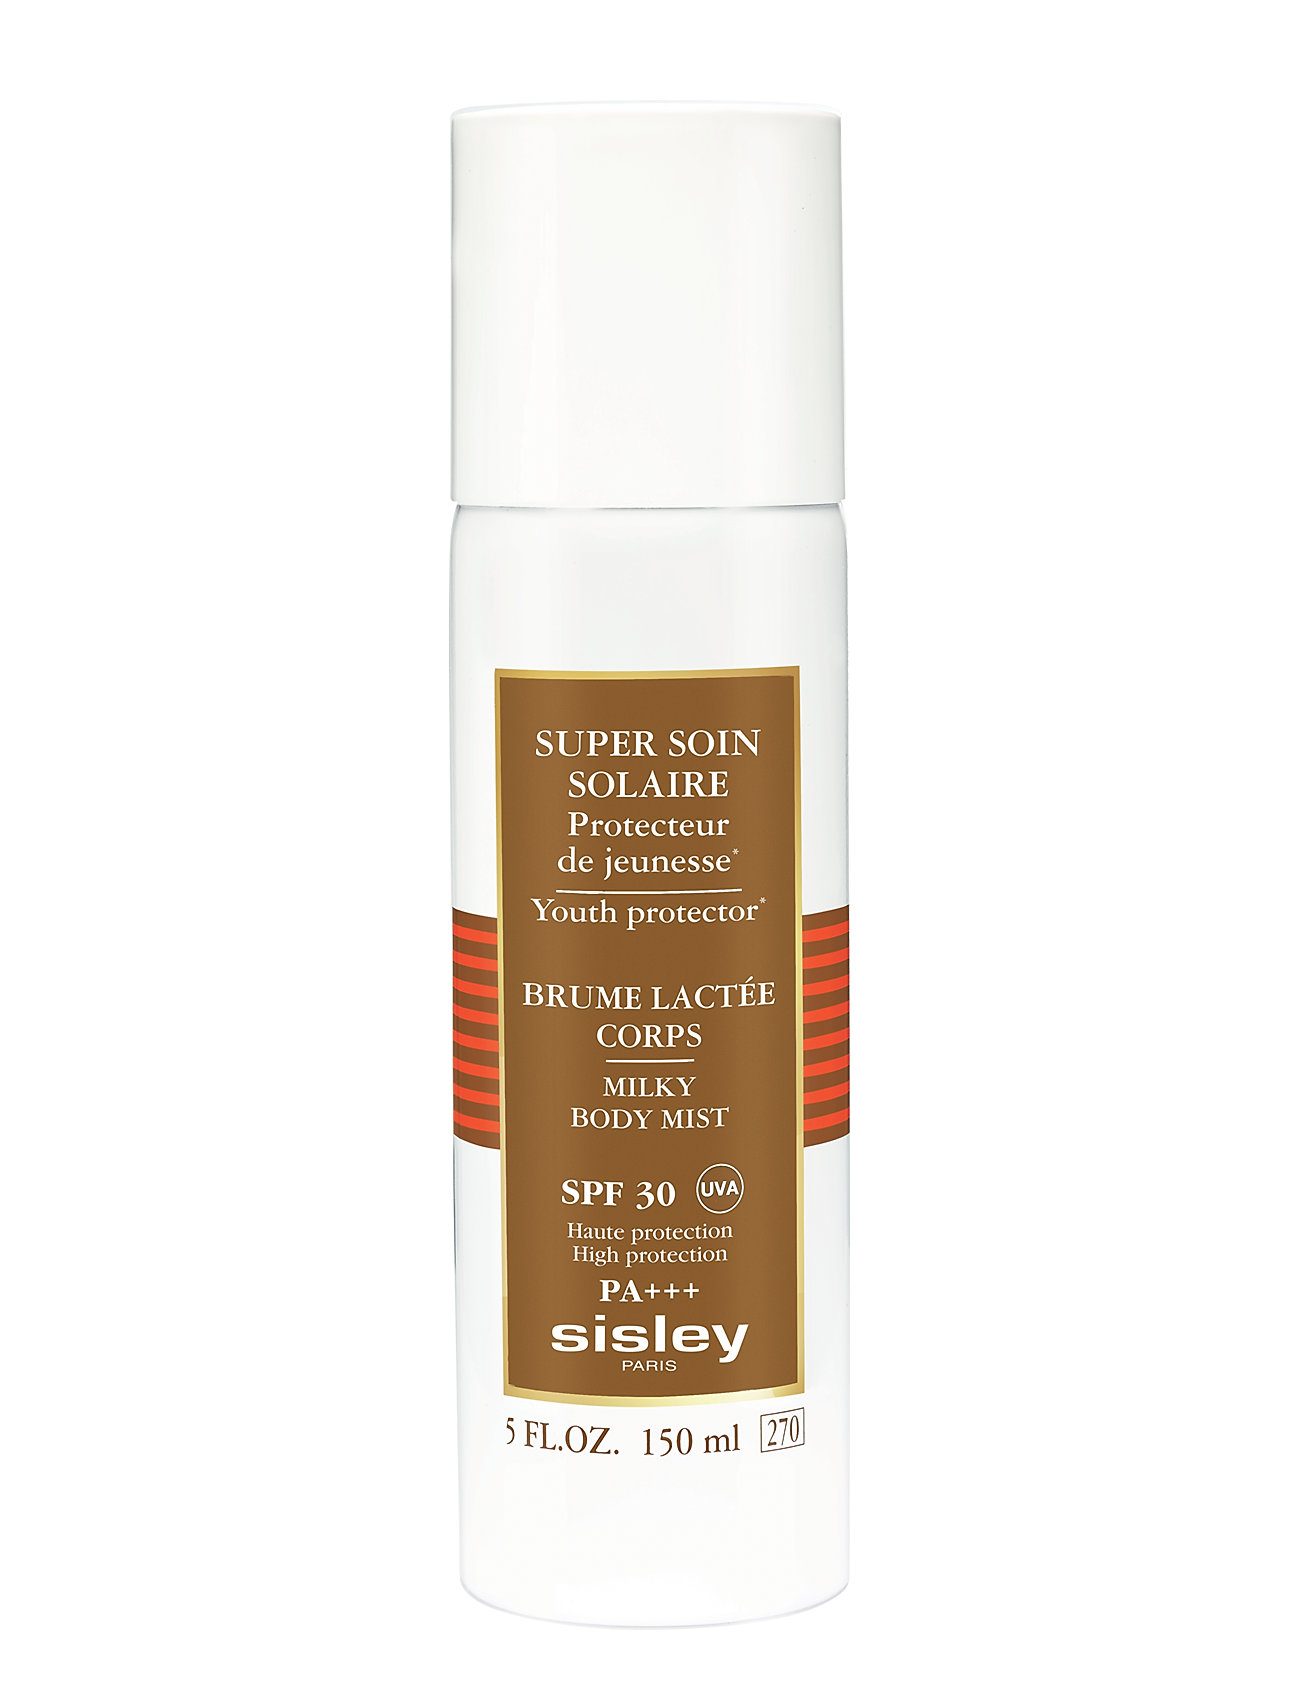 Sisley MILKY BODY MIST SUN CARE SPF30 150ml - CLEAR